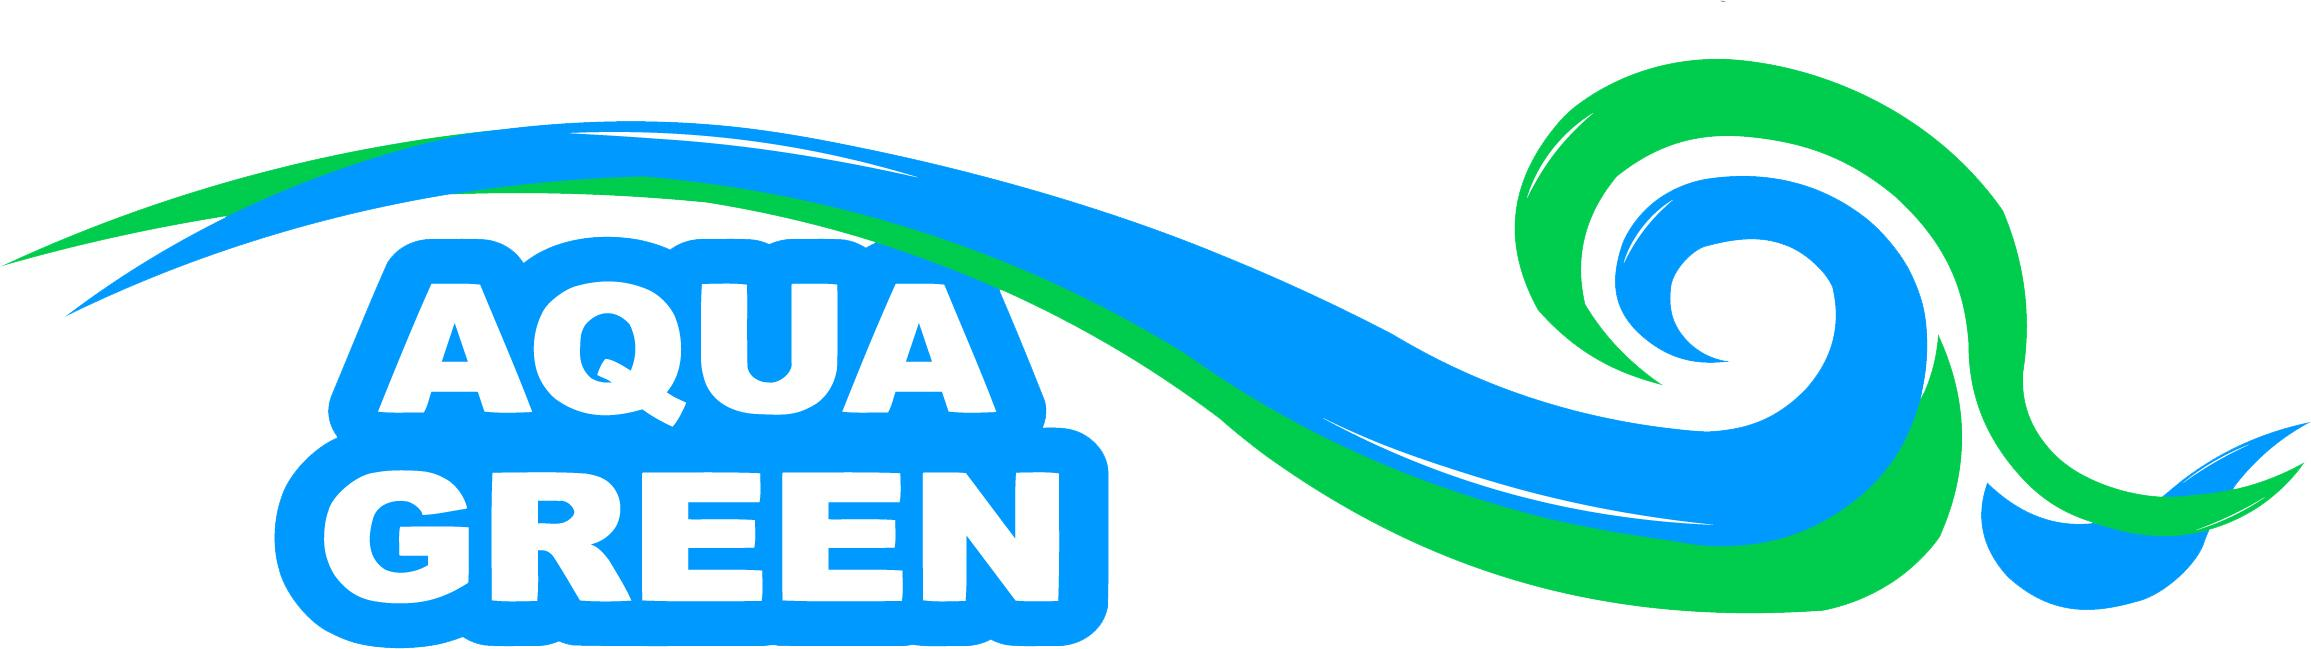 aquagreen logo_1_27_1_1